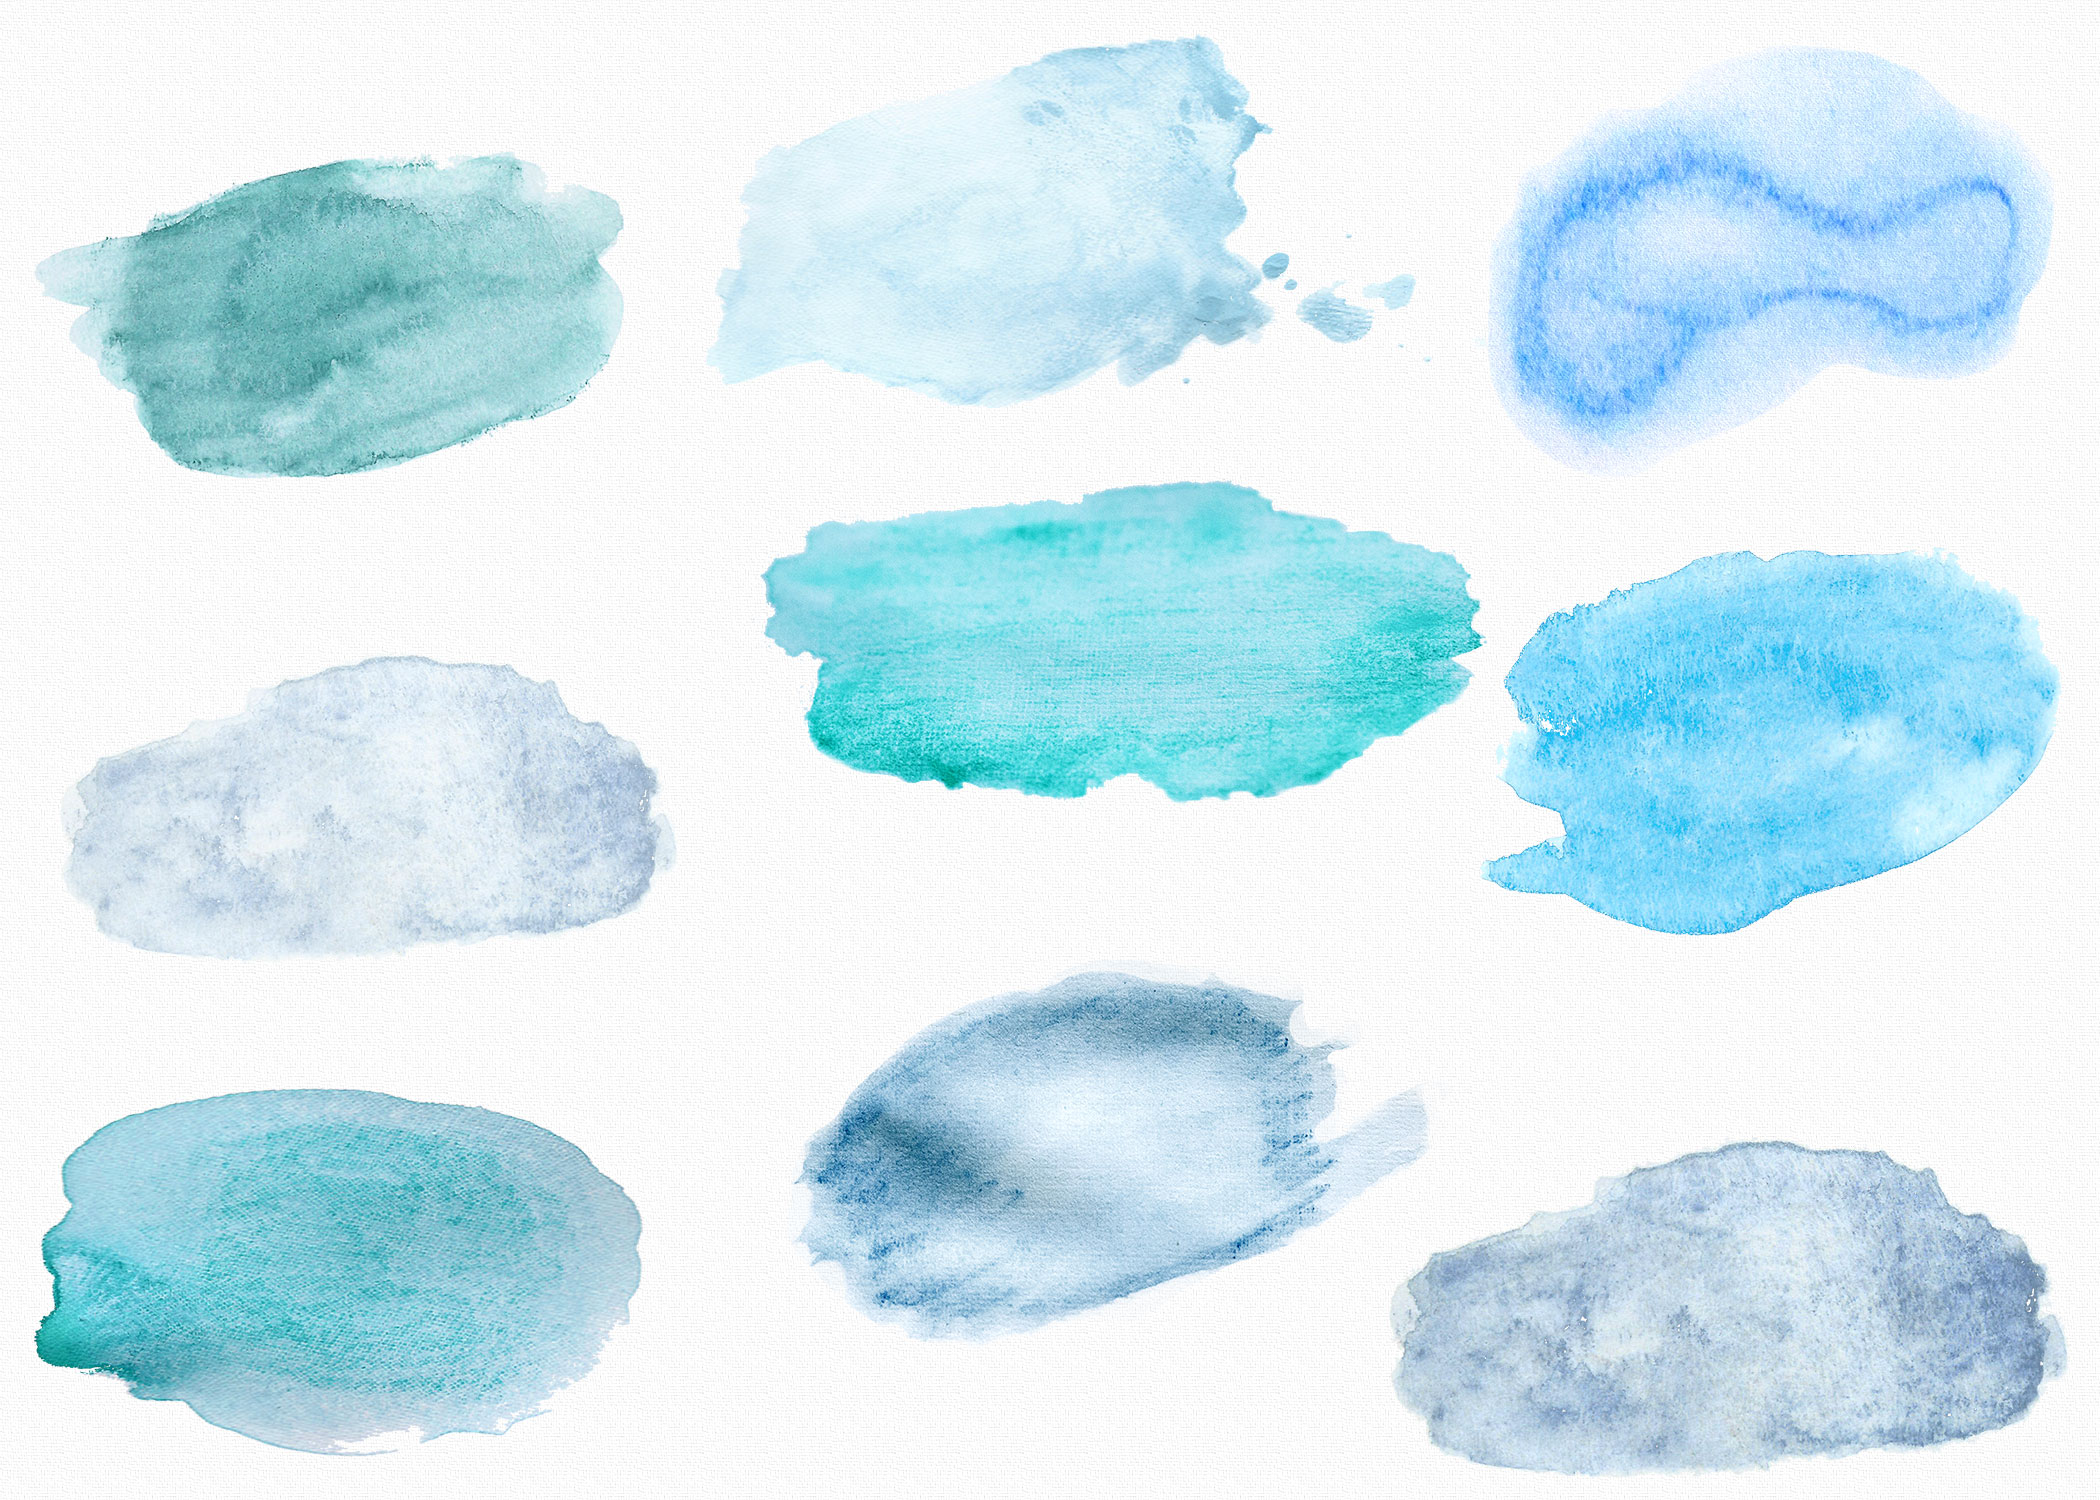 Watercolor hand painted textures example image 2